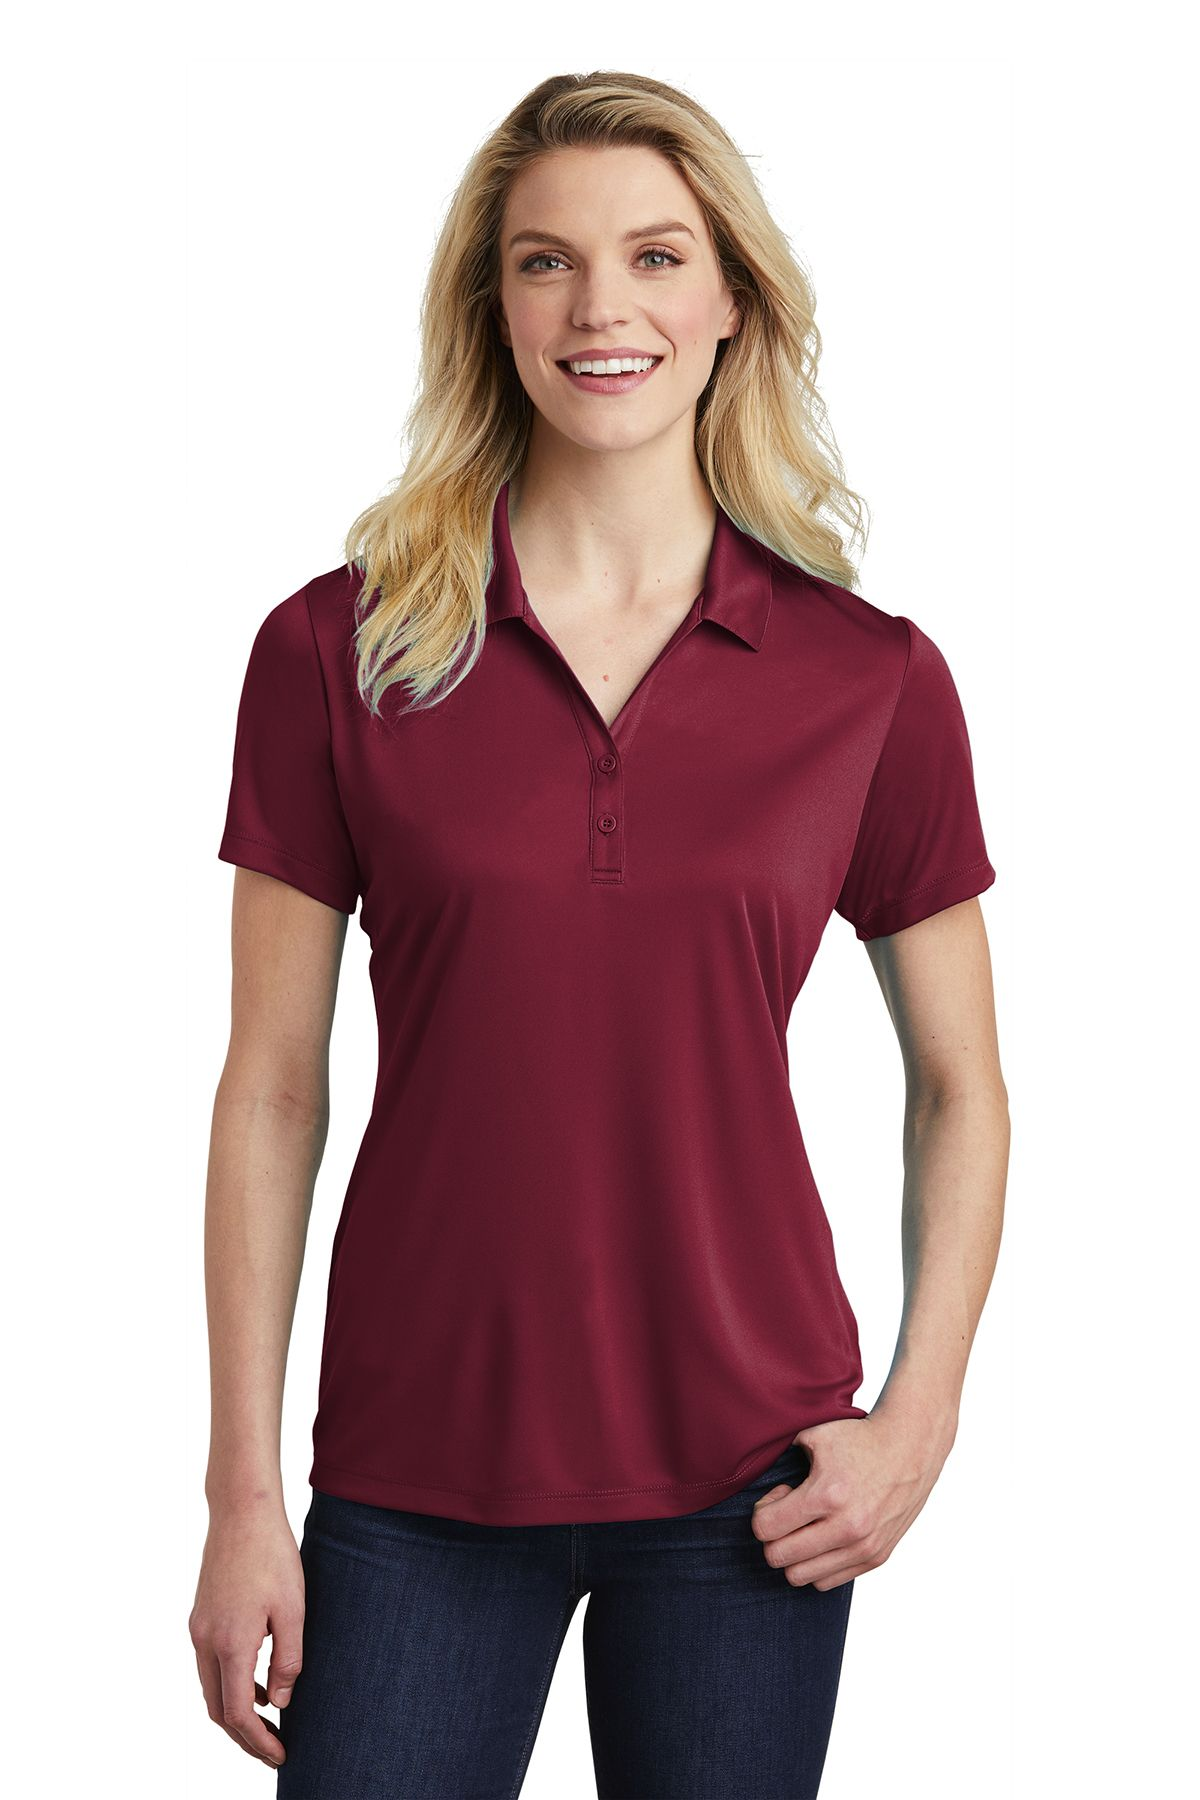 SportTek LST550 Ladies PosiCharge Competitor Polo